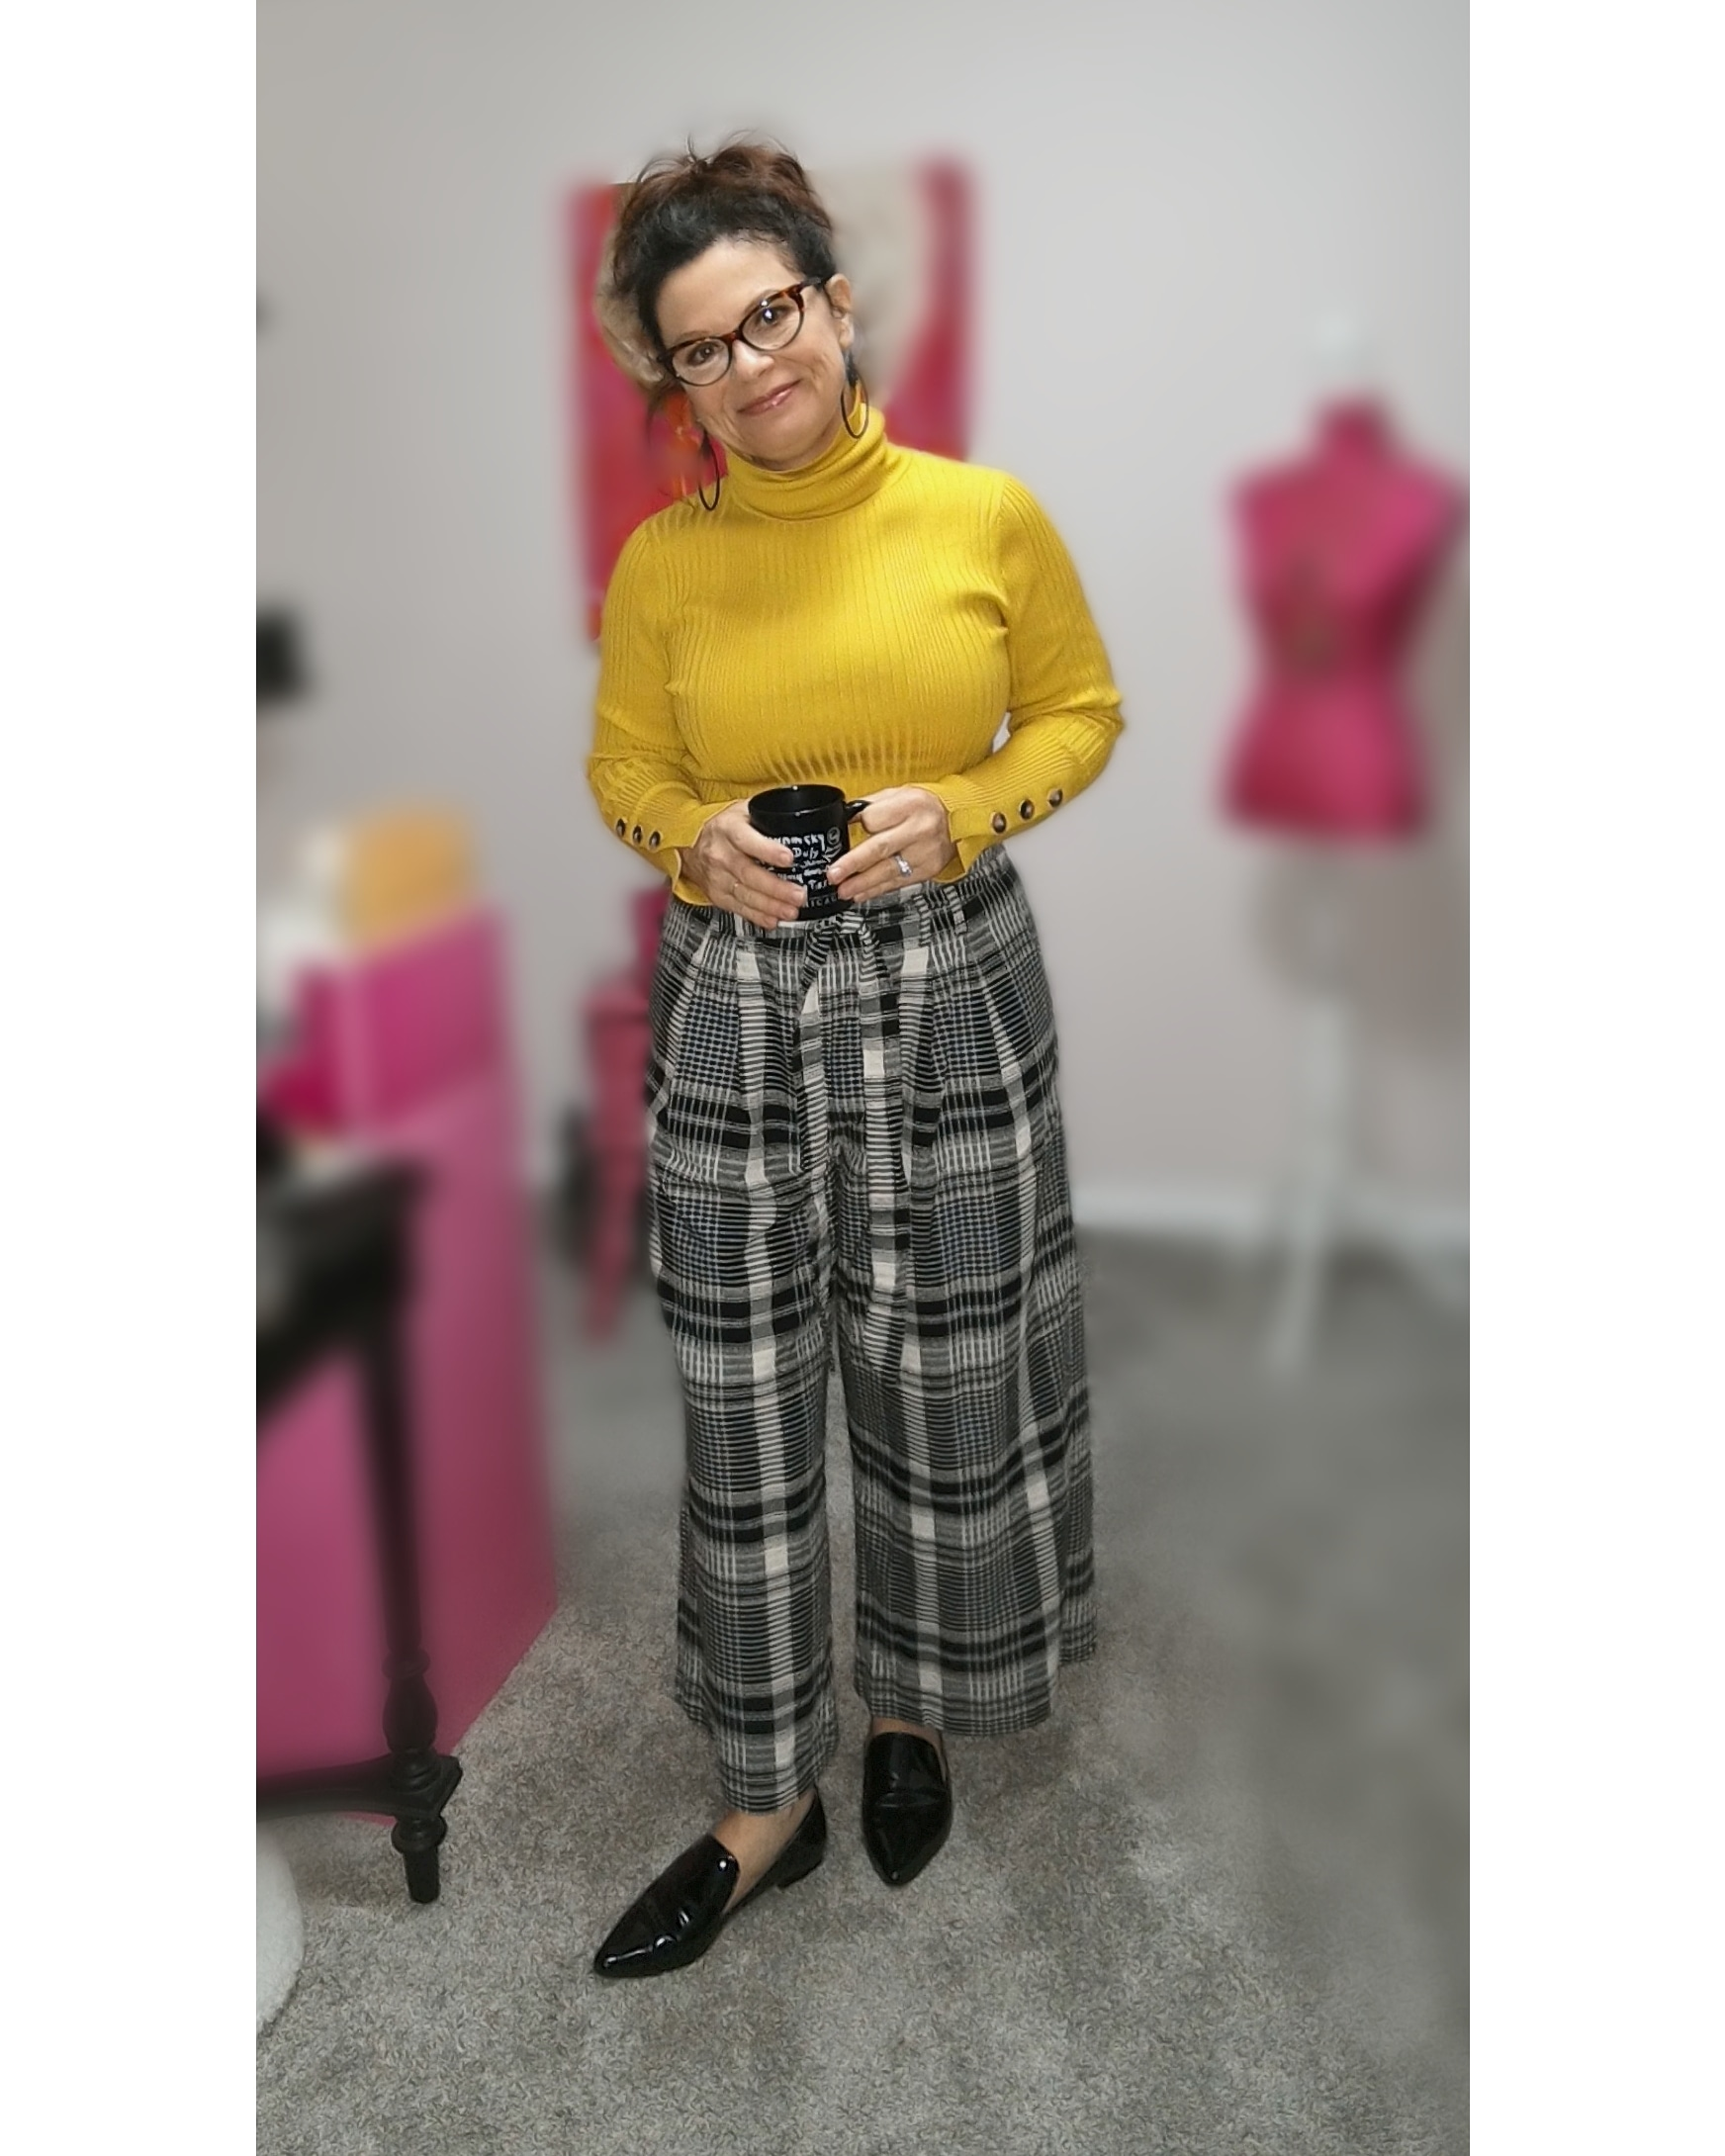 c3265011332e8d Image result for peasant skirt to teacher Clothes in 2018 t